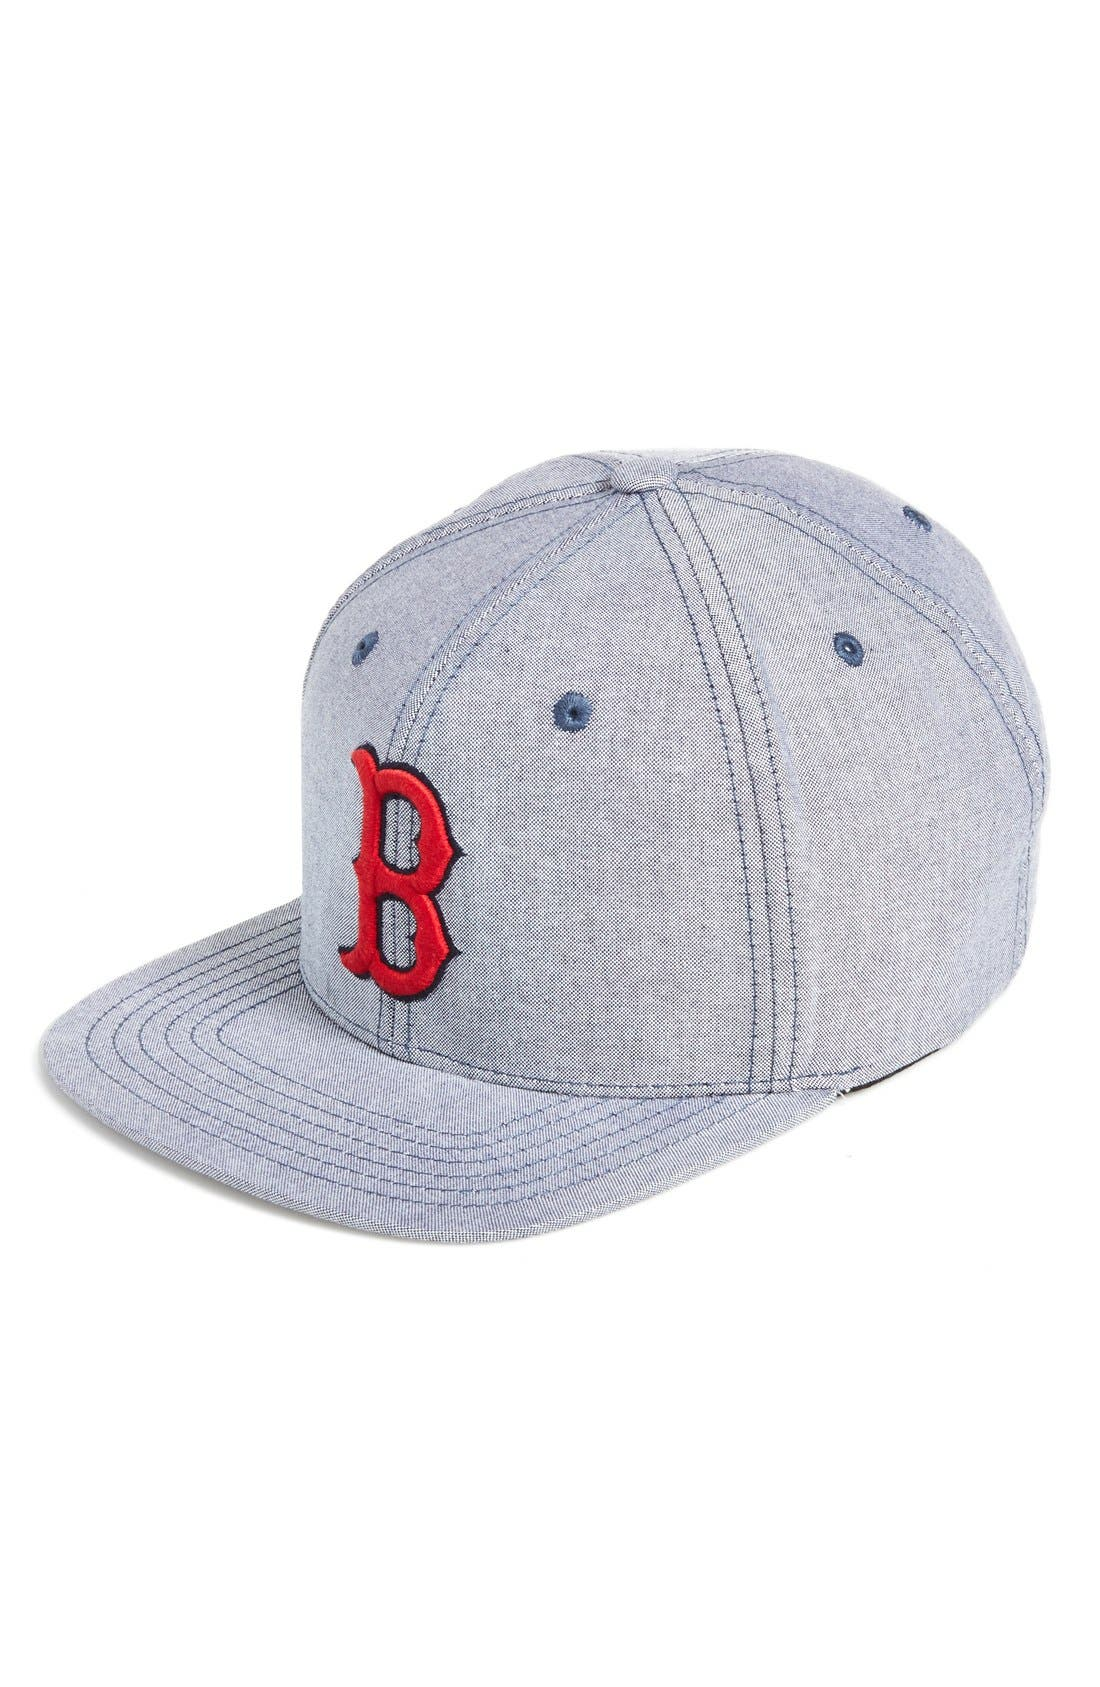 Alternate Image 1 Selected - American Needle 'Boston Red Sox - The Sound' Baseball Cap